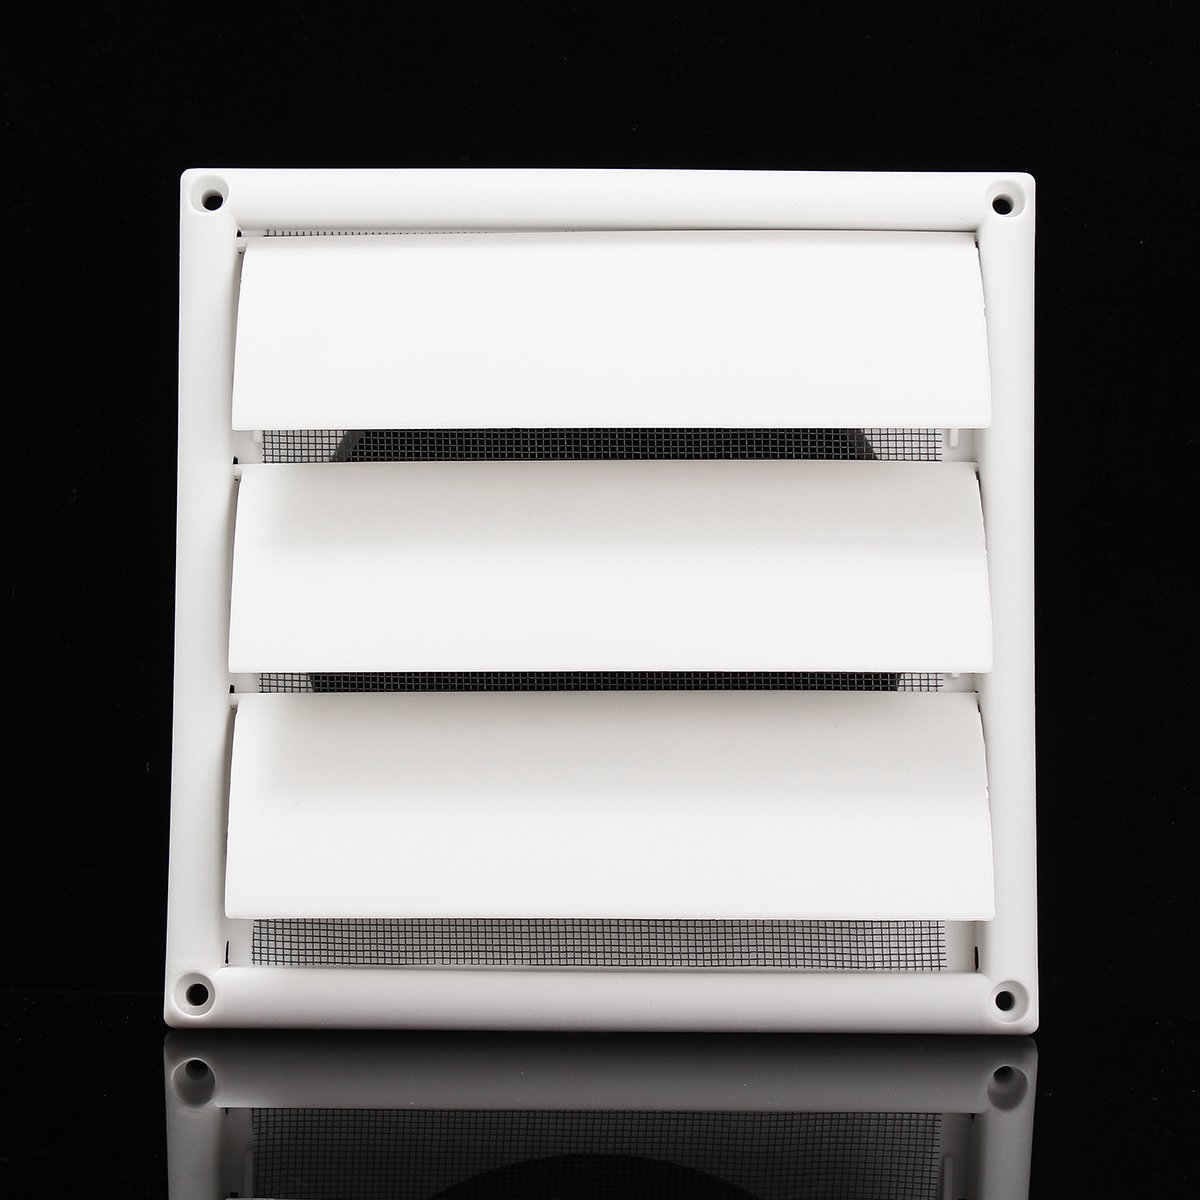 #6D675E Air Vent Grille Ventilation Cover Plastic White Wall  Highly Rated 1049 Air Vent Covers Wall wallpapers with 1200x1200 px on helpvideos.info - Air Conditioners, Air Coolers and more